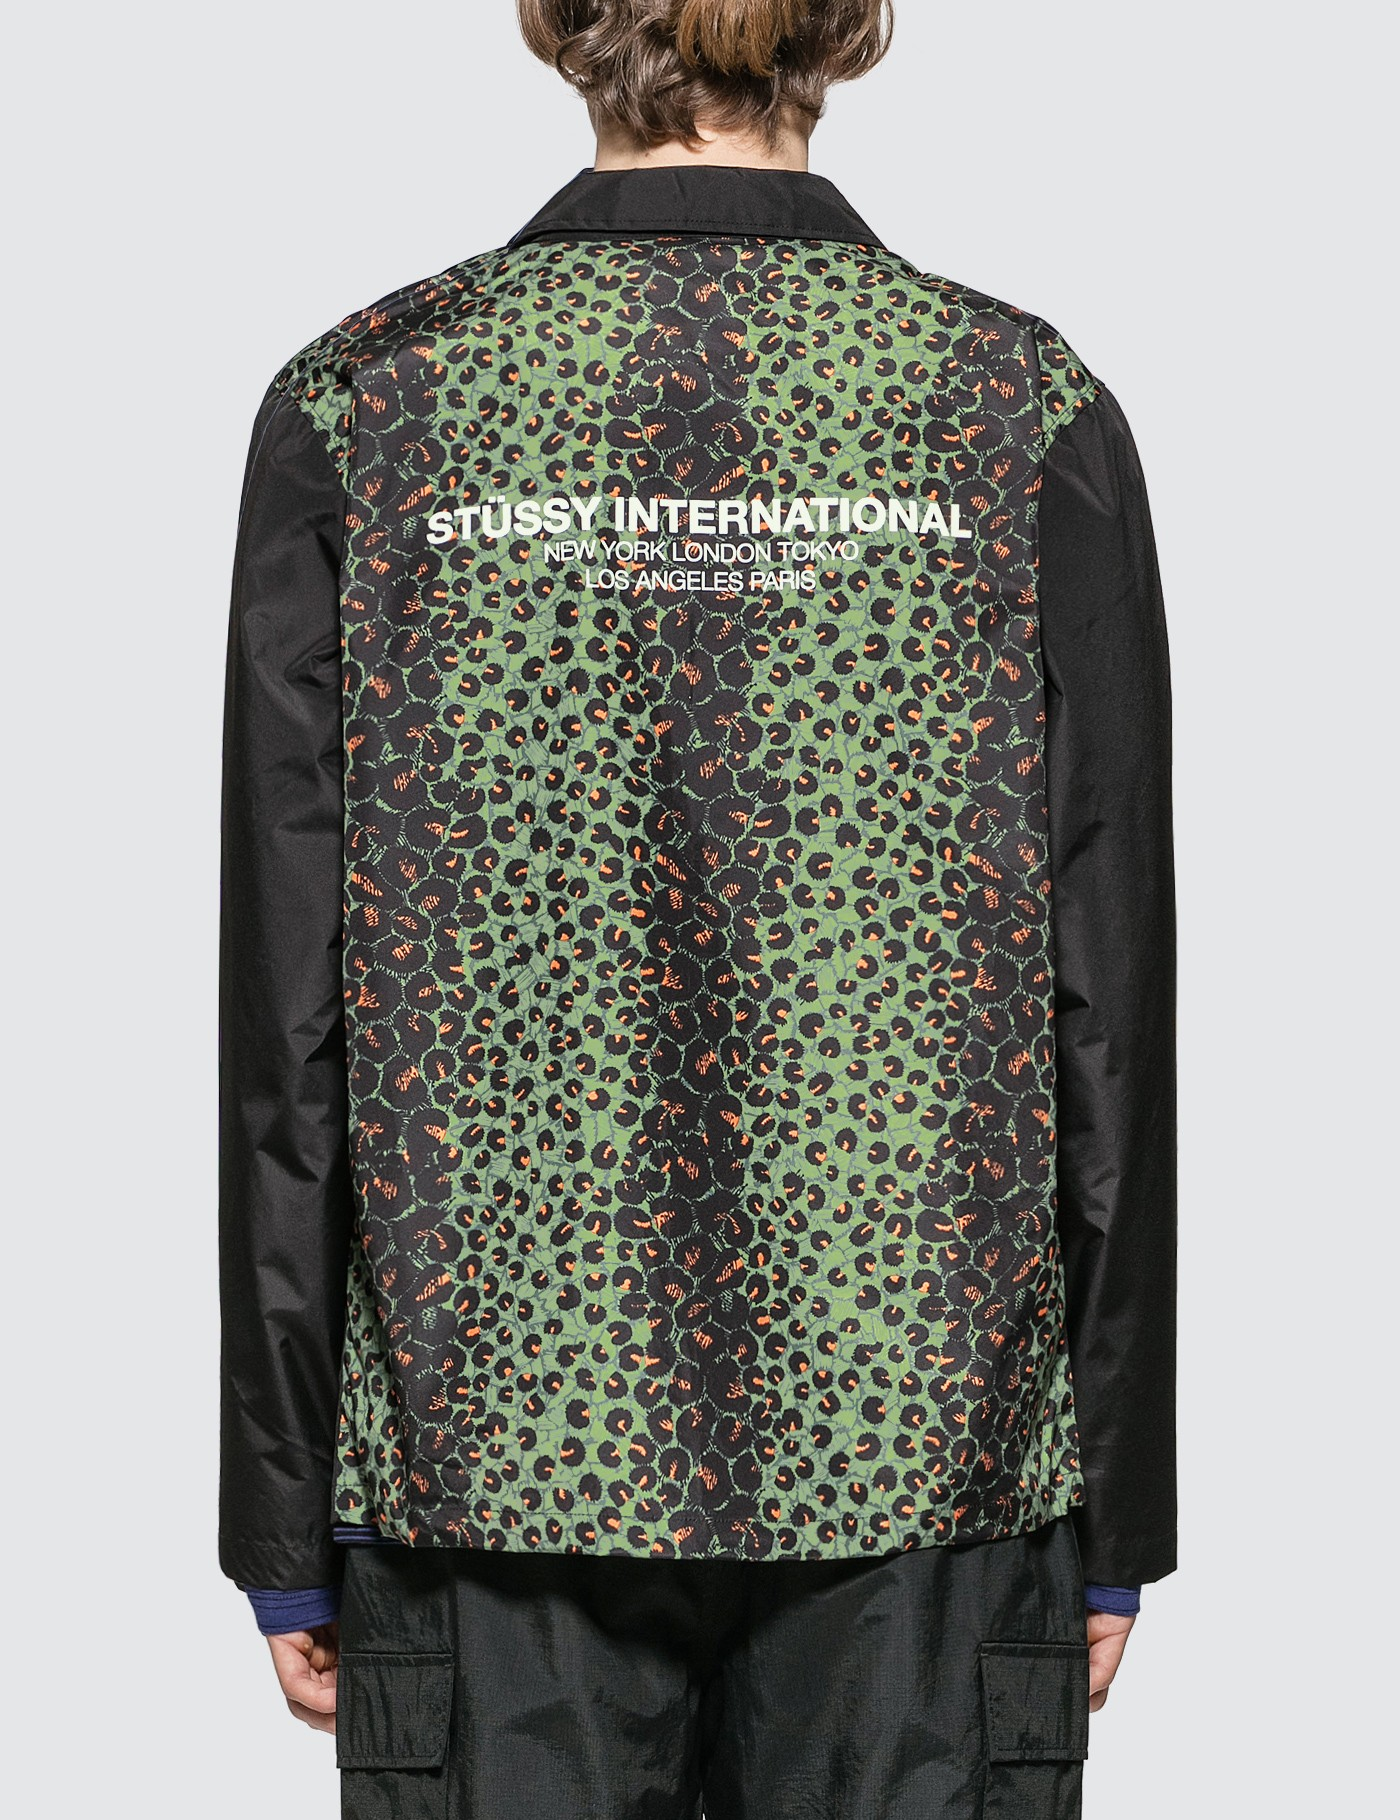 Stussy Leopard Panel Jacket